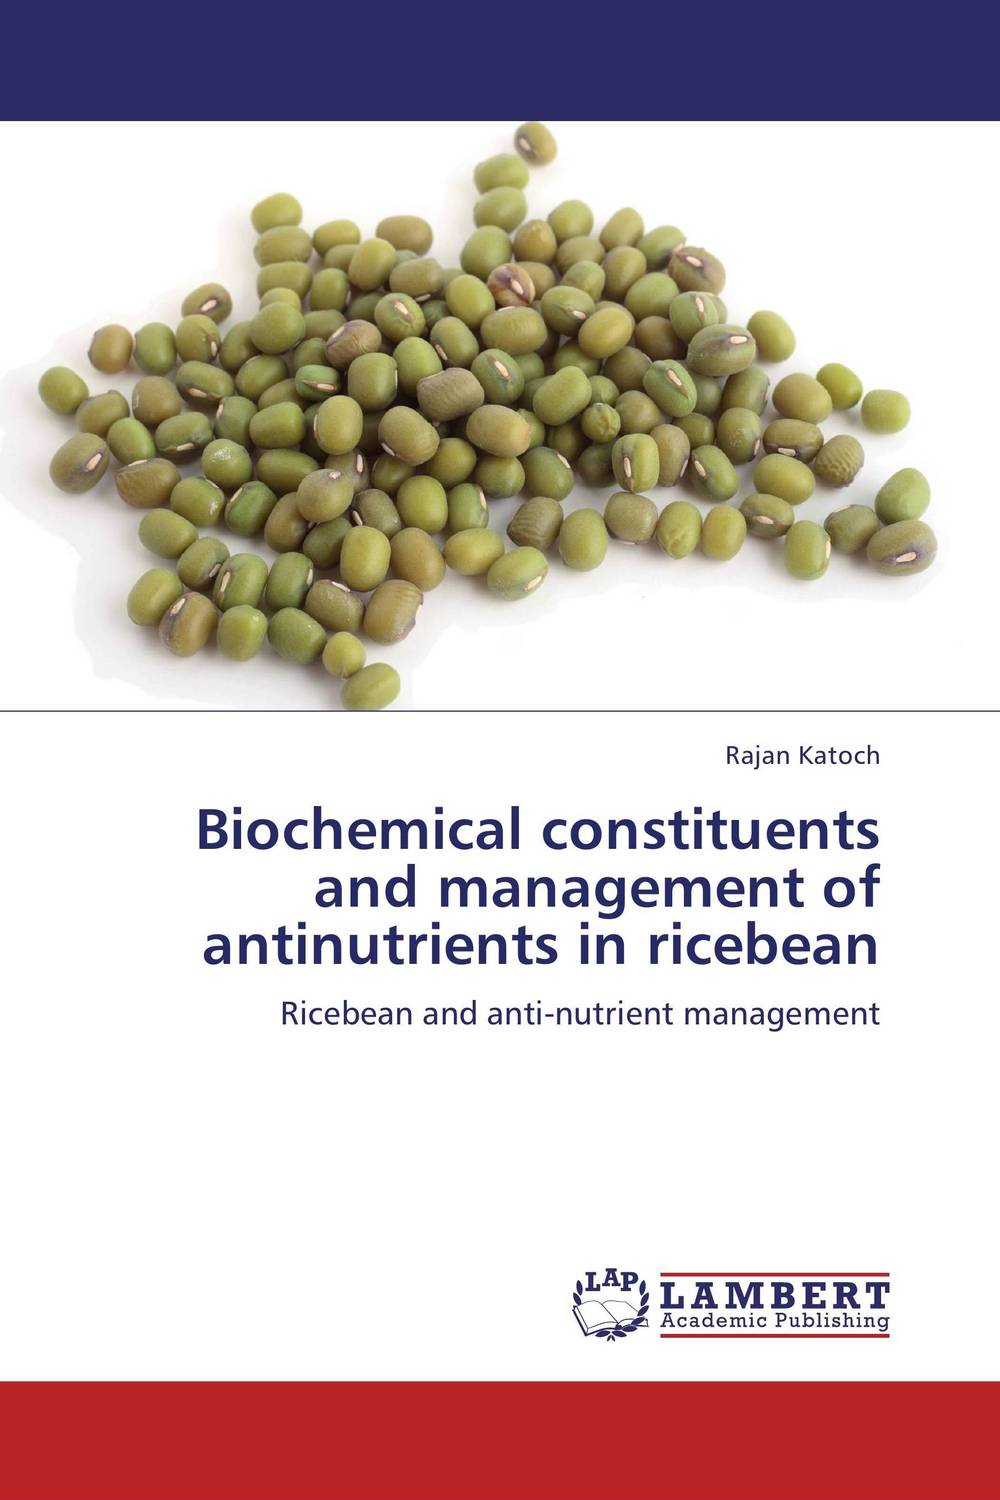 Biochemical constituents and management of antinutrients in ricebean k r k naidu a v ramana and r veeraraghavaiah common vetch management in rice fallow blackgram